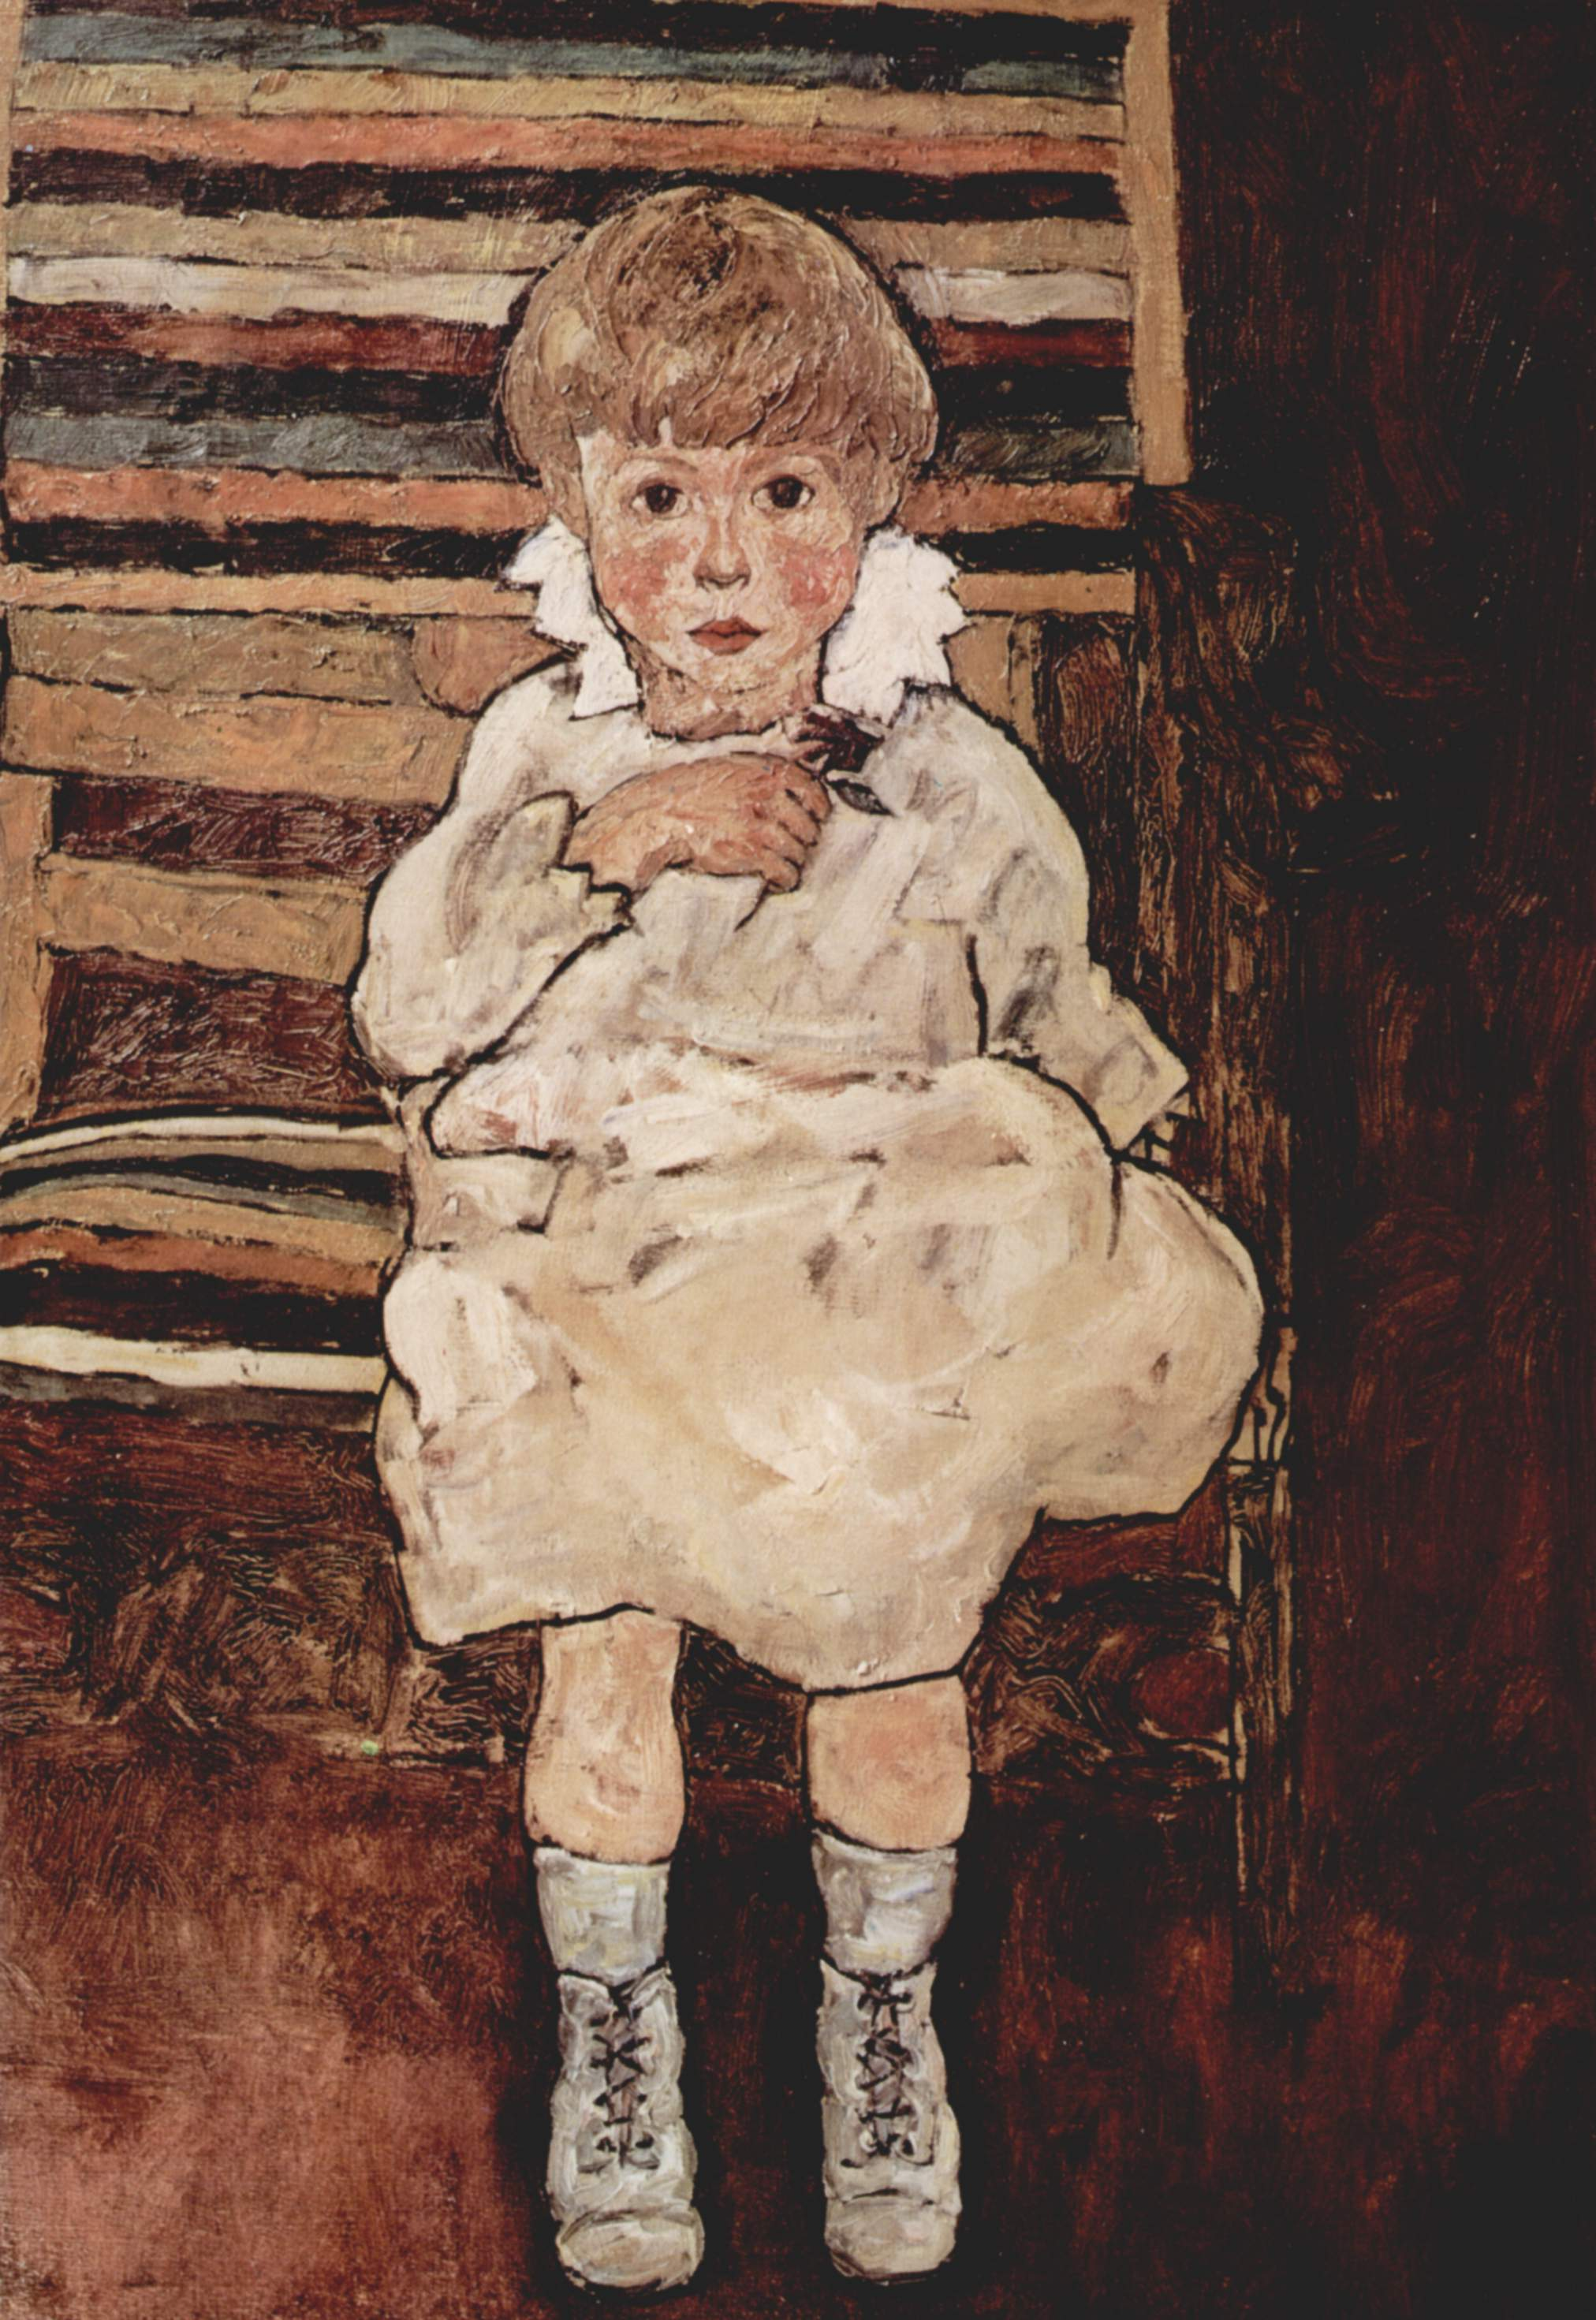 https://i1.wp.com/upload.wikimedia.org/wikipedia/commons/7/74/Egon_Schiele_086.jpg